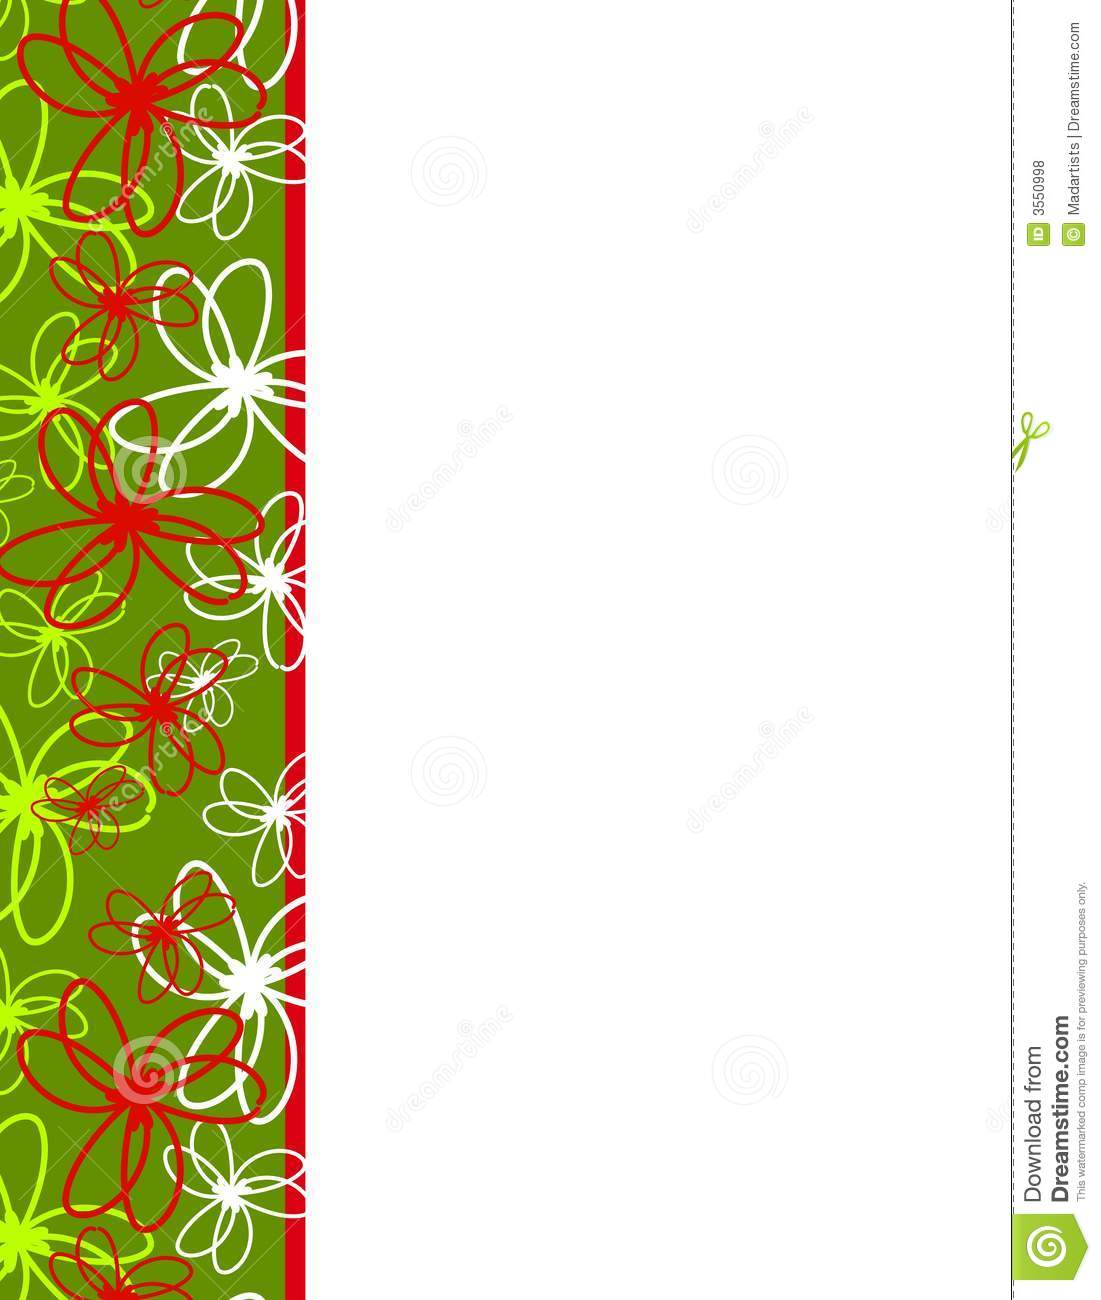 Fall Borders Clipart Free.